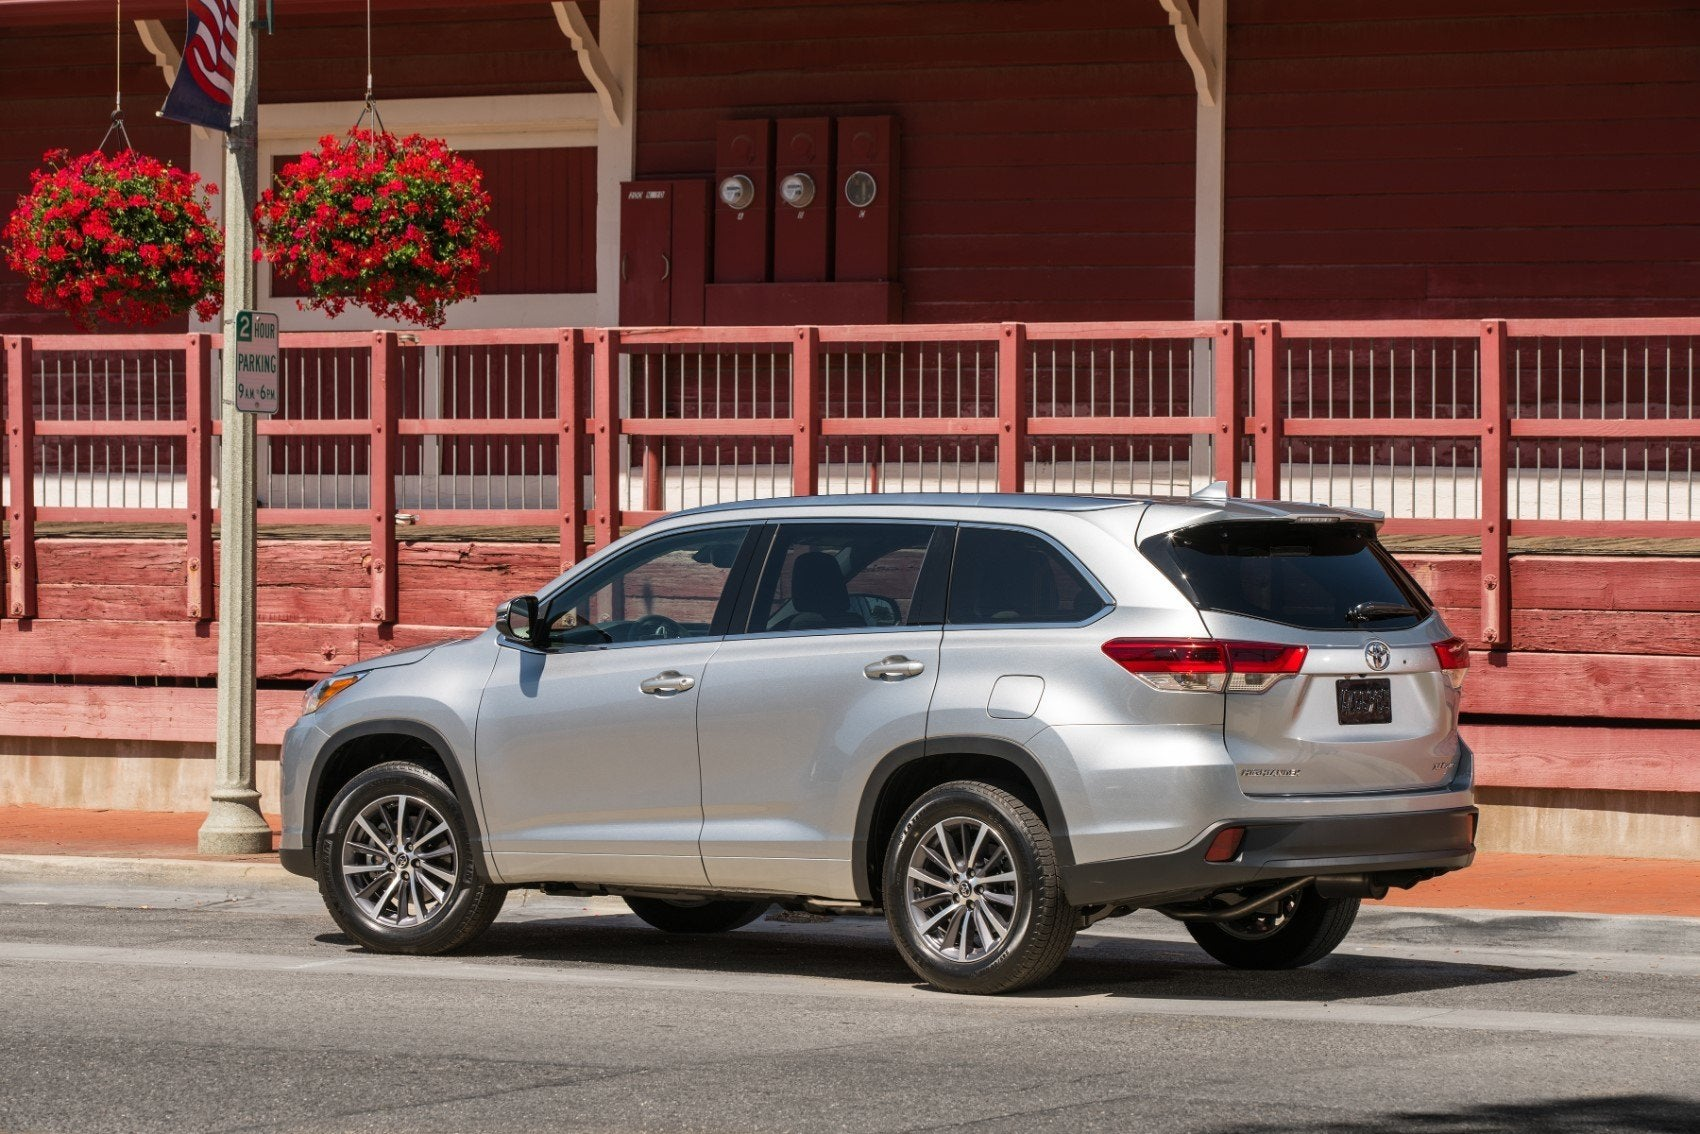 2019 Toyota Highlander Se Review Ideal For Active Families